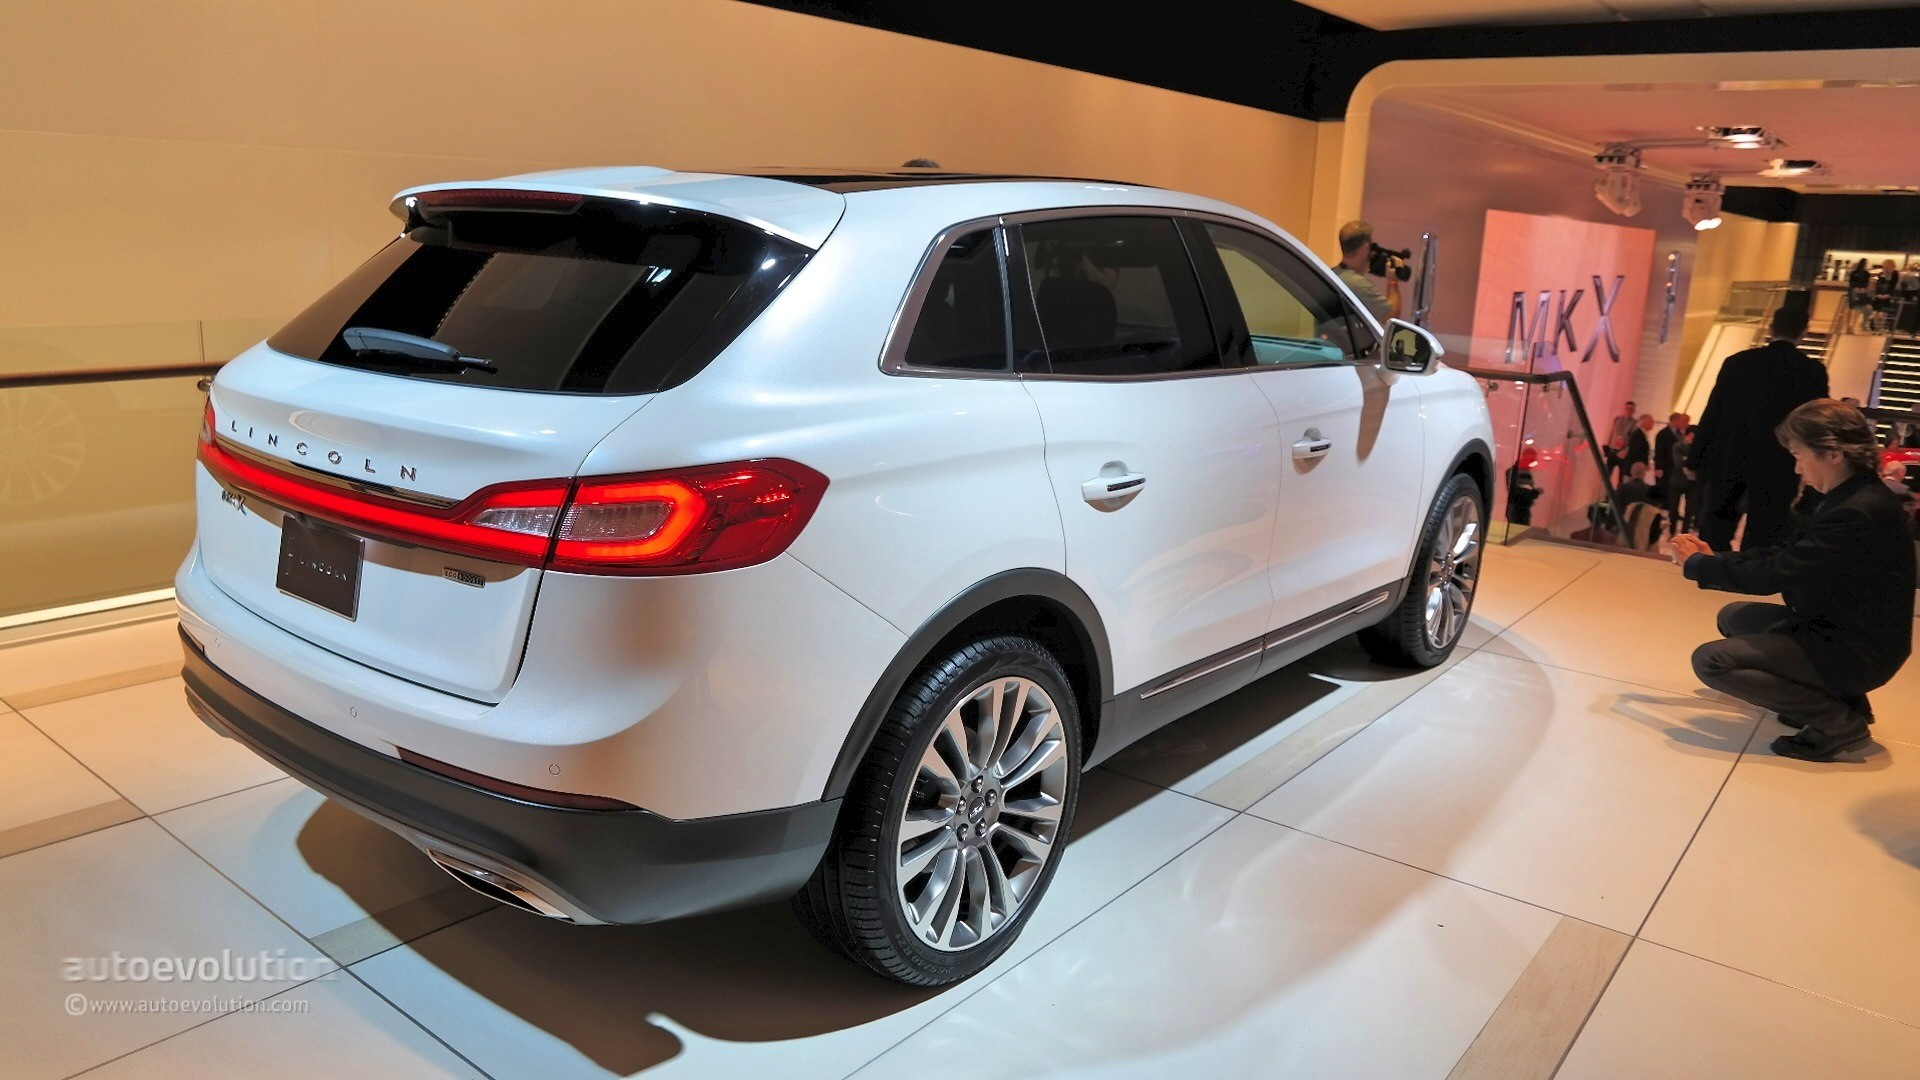 2016 lincoln mkx price mid size crossover starts at 39 025 autoevolution. Black Bedroom Furniture Sets. Home Design Ideas